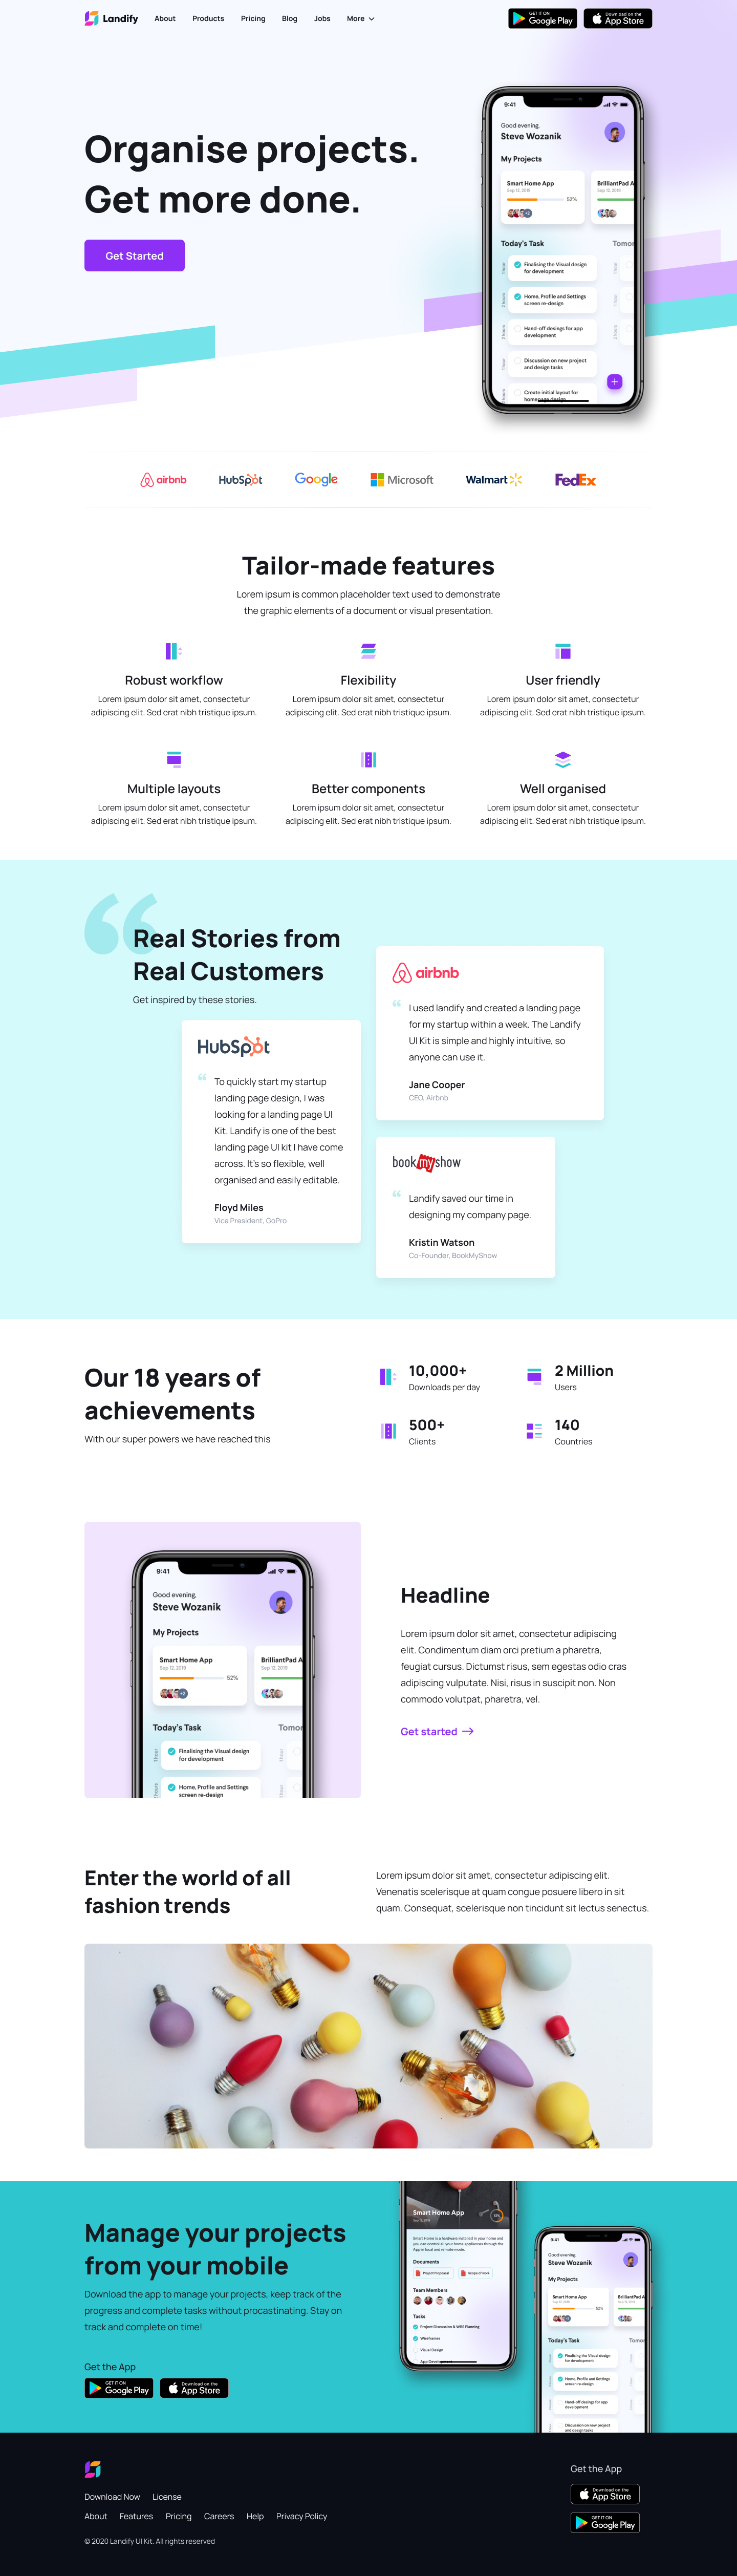 Landify - Free Landing Page UI Kit for Figma - Create your landing page design faster with Landify UI kit. The kit contains 90+ blocks, divided into 13 categories based on the purpose and use case. It is a well-organised collection of components that helps you to easily swap instance.